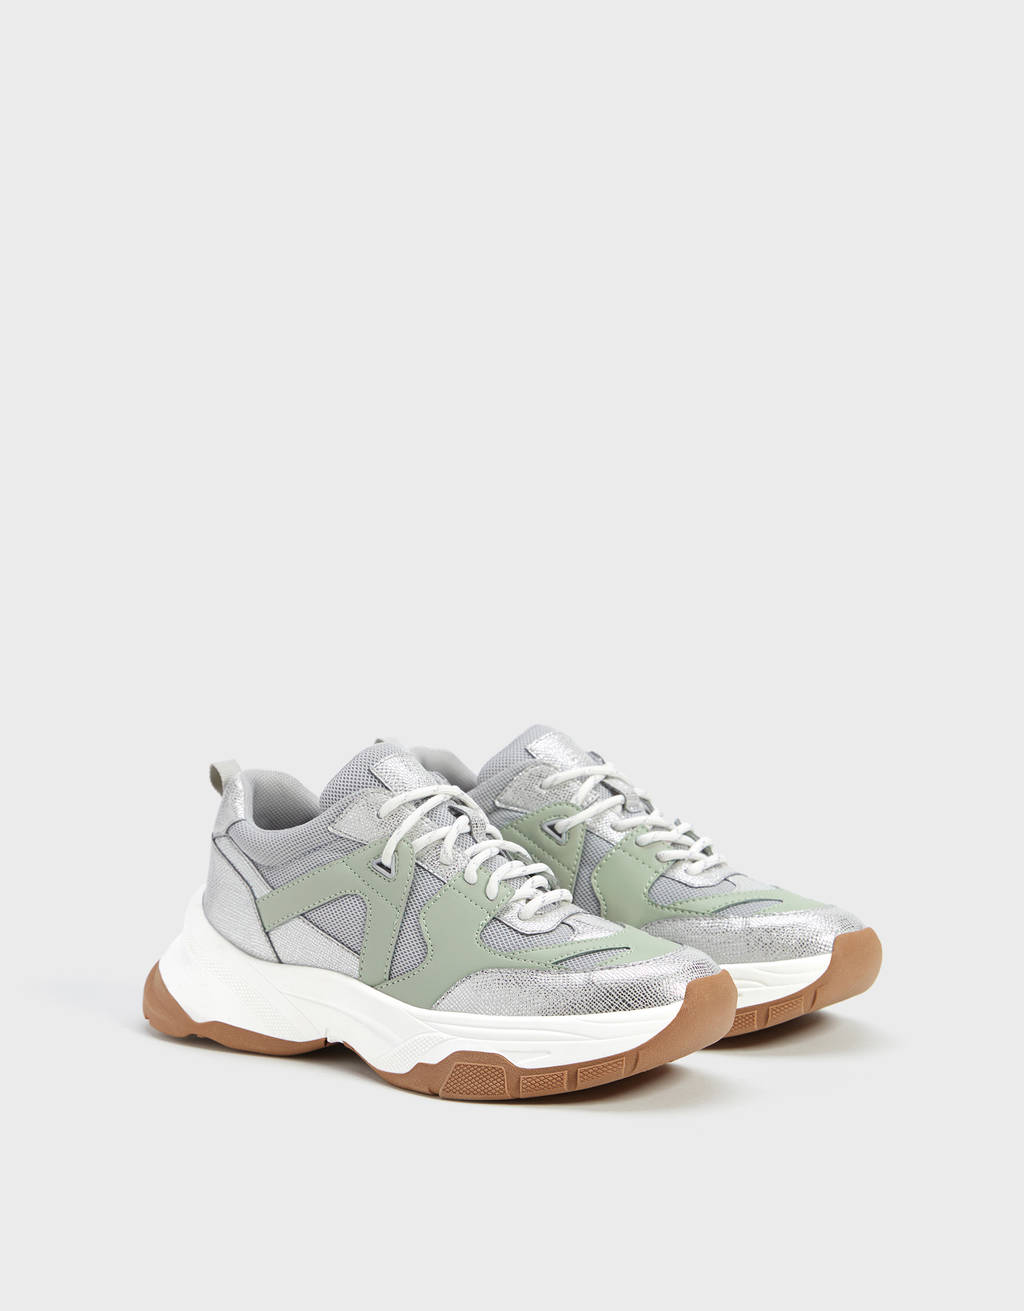 Shiny trainers in contrast materials